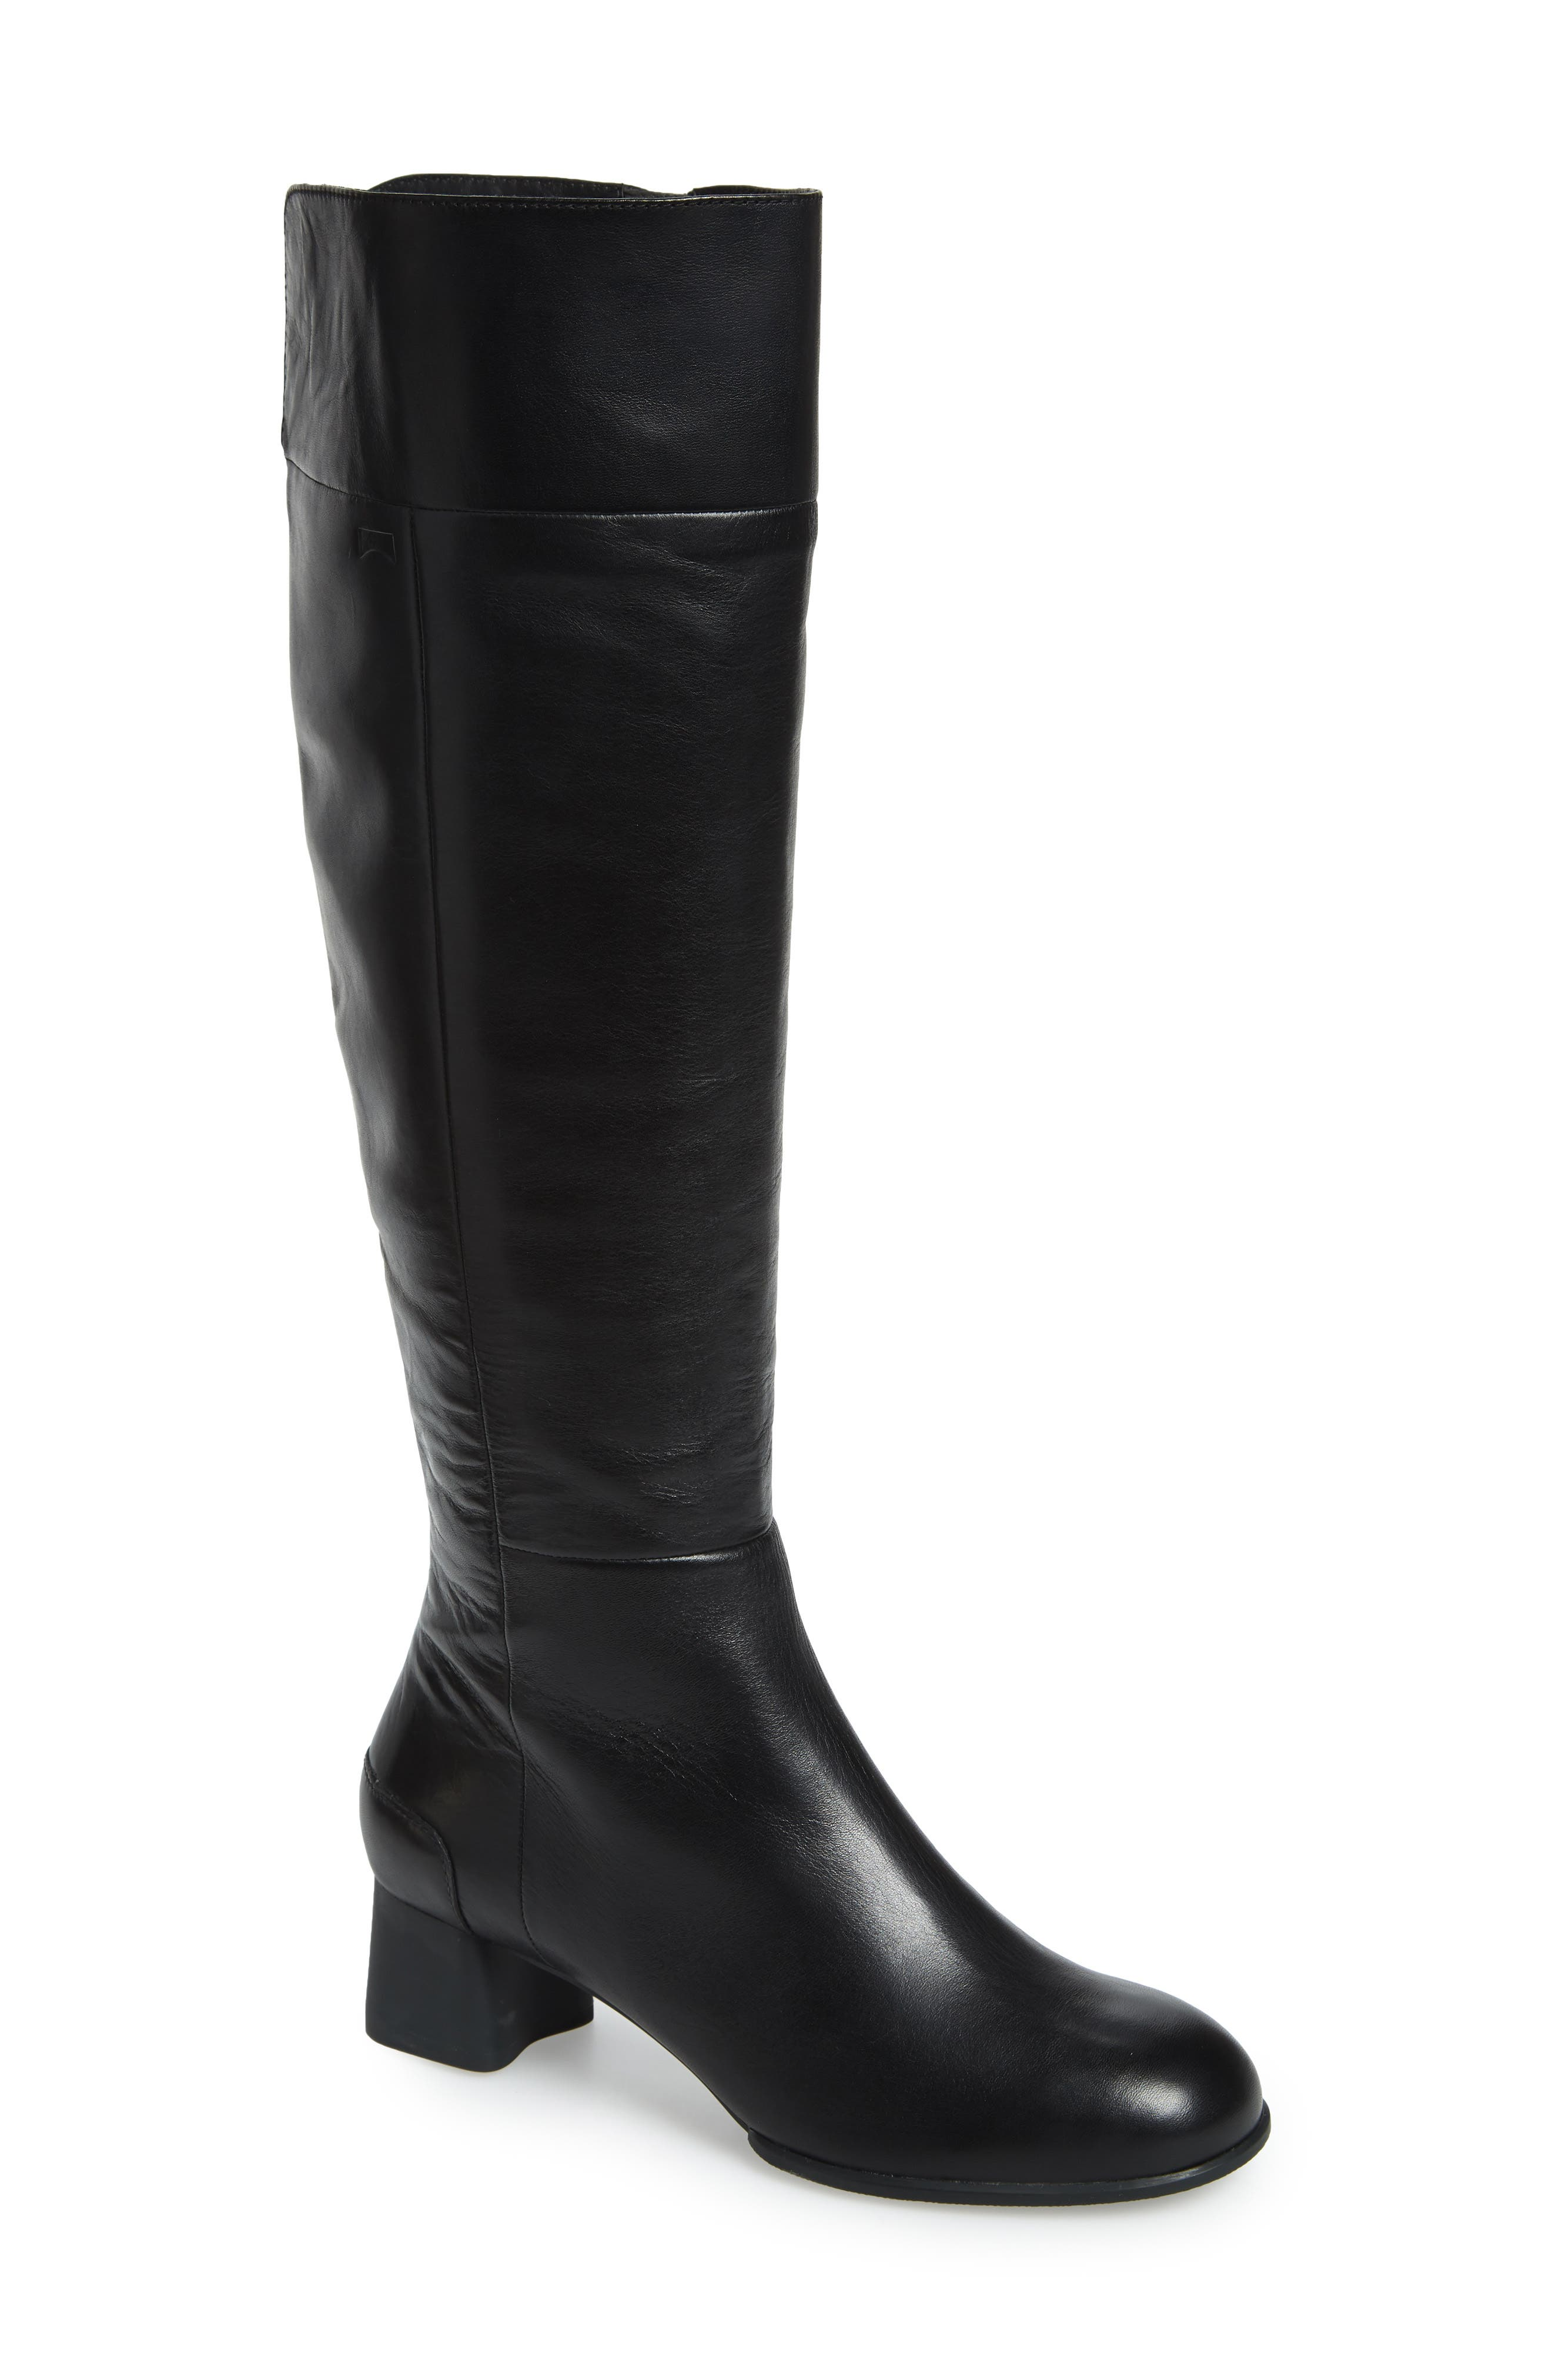 A streamlined knee-high boot marries modern sophistication and everyday comfort with an eye-catching square heel and a signature lightweight, flexible sole. Style Name: Camper Katie Knee High Boot (Women). Style Number: 5668338. Available in stores.